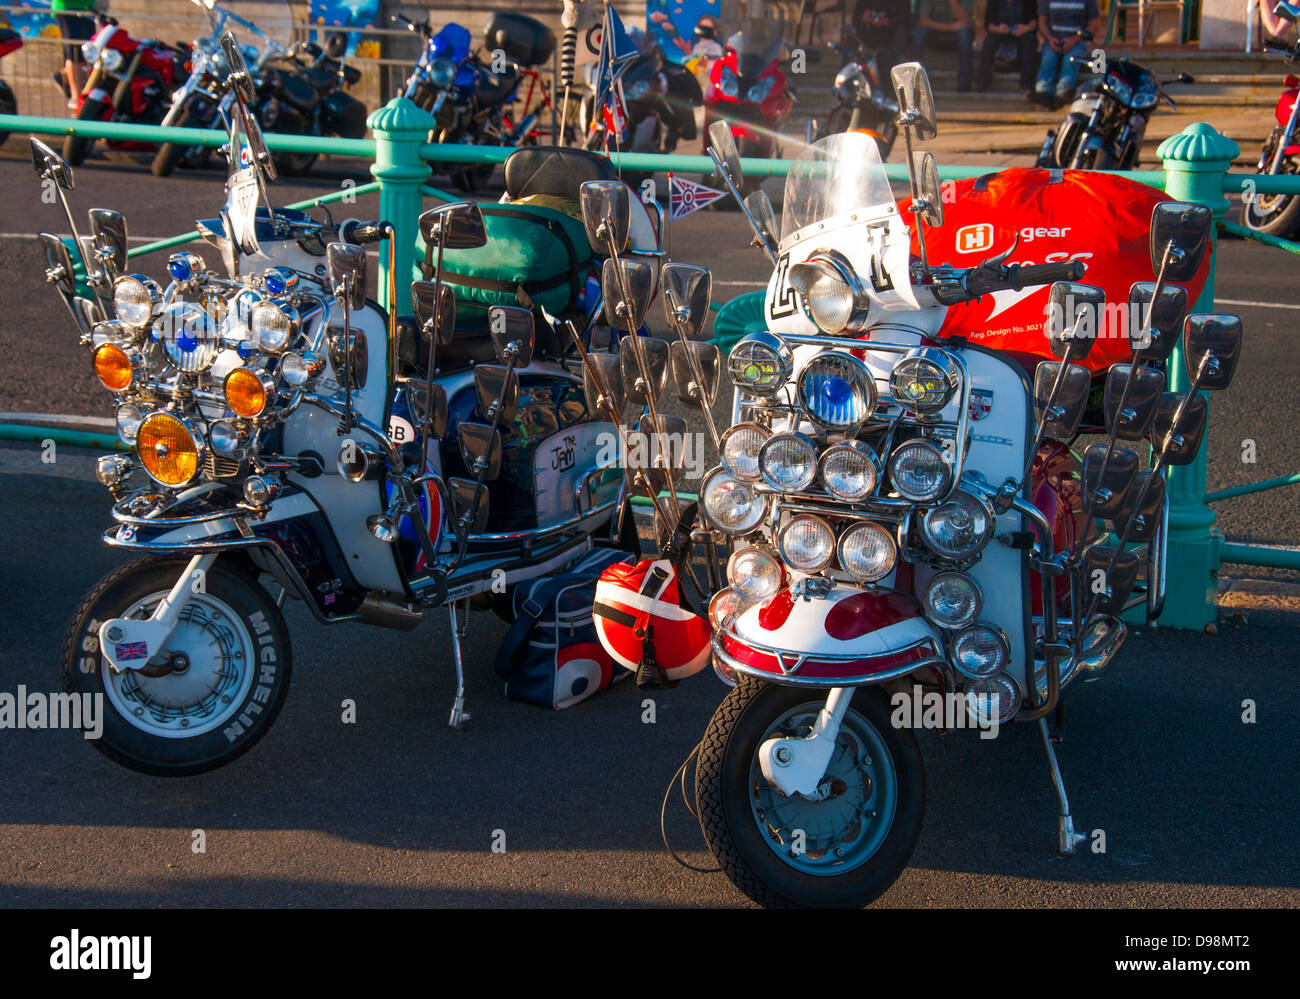 A pair of mod scooters, adorned with multiple lights and mirrors, parked near Brighton promenade, England, UK. - Stock Image